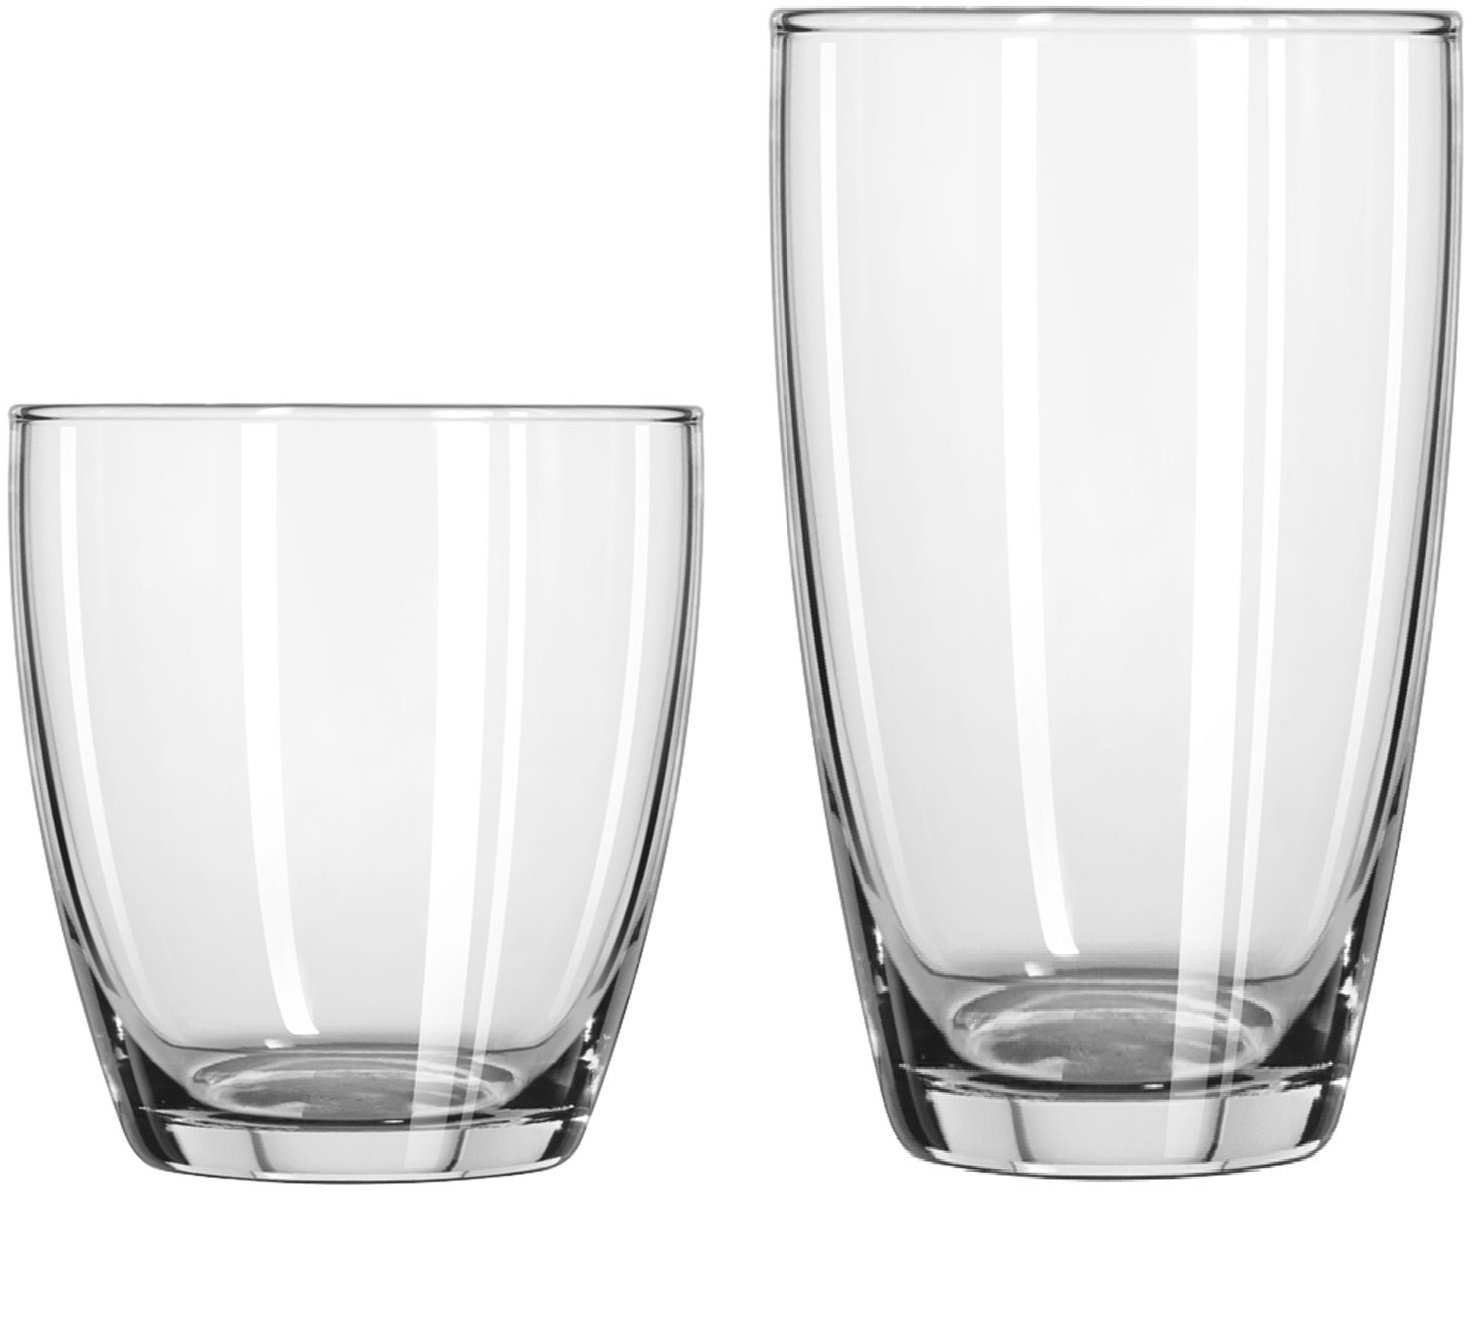 Circleware 44539 Smooth Huge Set of 12, 6-16oz Drinking Glasses & 6-13oz Whiskey Glass, Kitchen Glassware for Water, Beer, Wine Liquor Beverage, 16oz&13oz, Smooth 12pc by Circleware (Image #6)